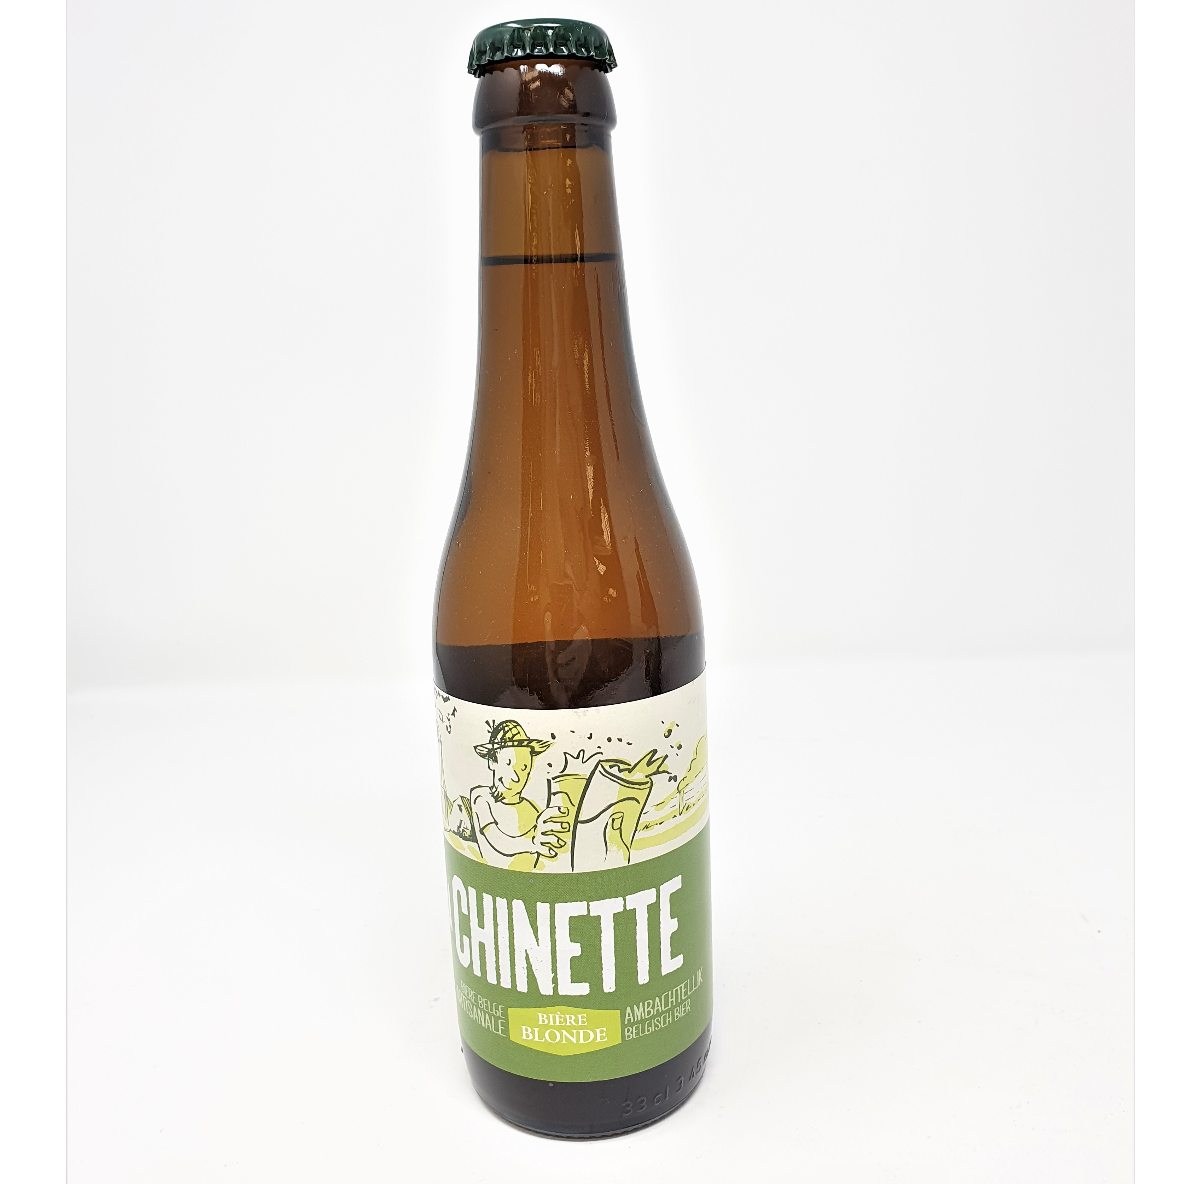 Chinette blonde 33cl